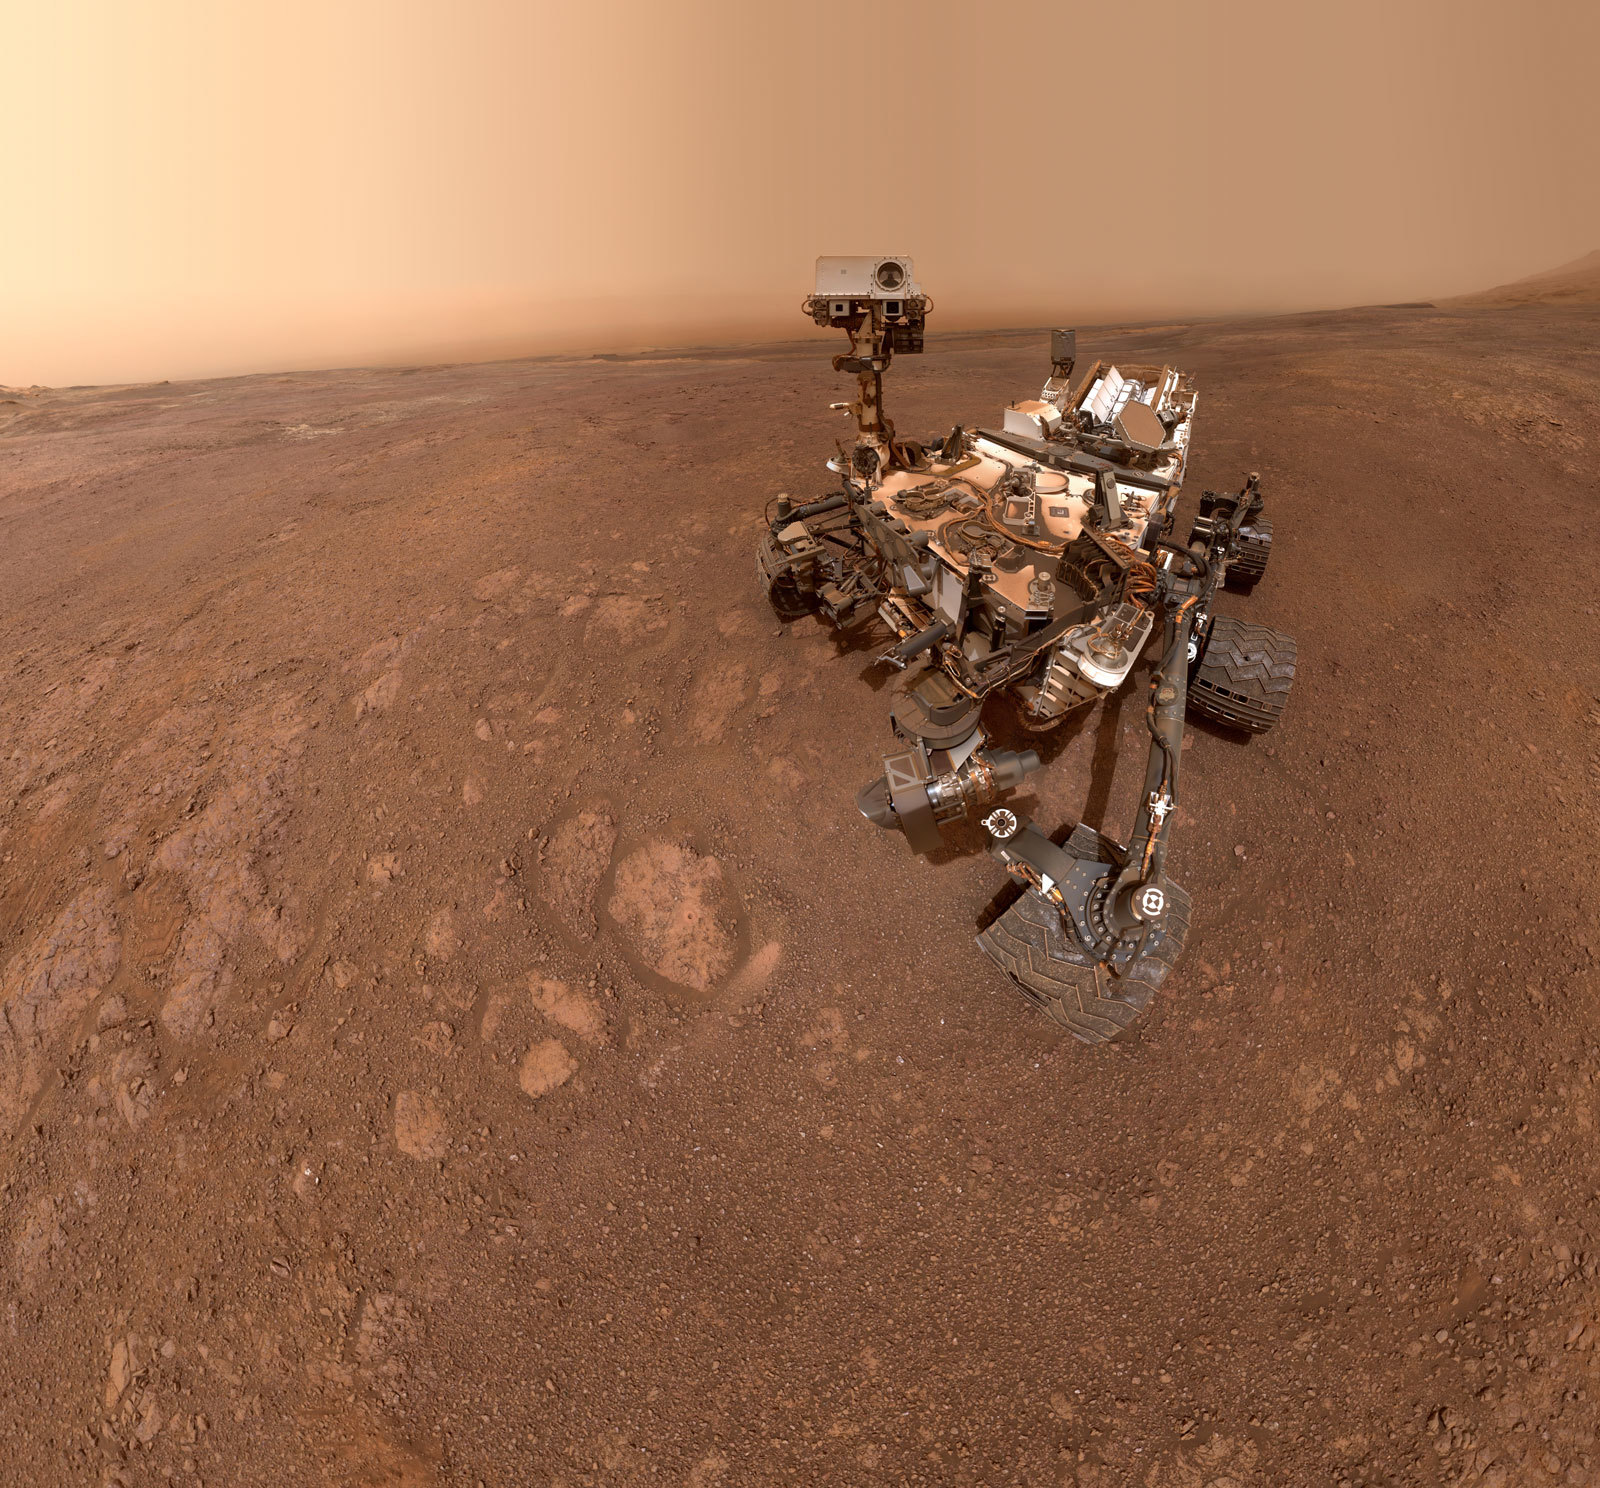 "Curiosity's Selfie at ""Rock Hall"": A selfie taken by NASA's Curiosity Mars rover on Sol 2291 (January 15) at the ""Rock Hall"" drill site, located on Vera Rubin Ridge. Image Credit: NASA/JPL-Caltech/MSSS. Full image and caption."